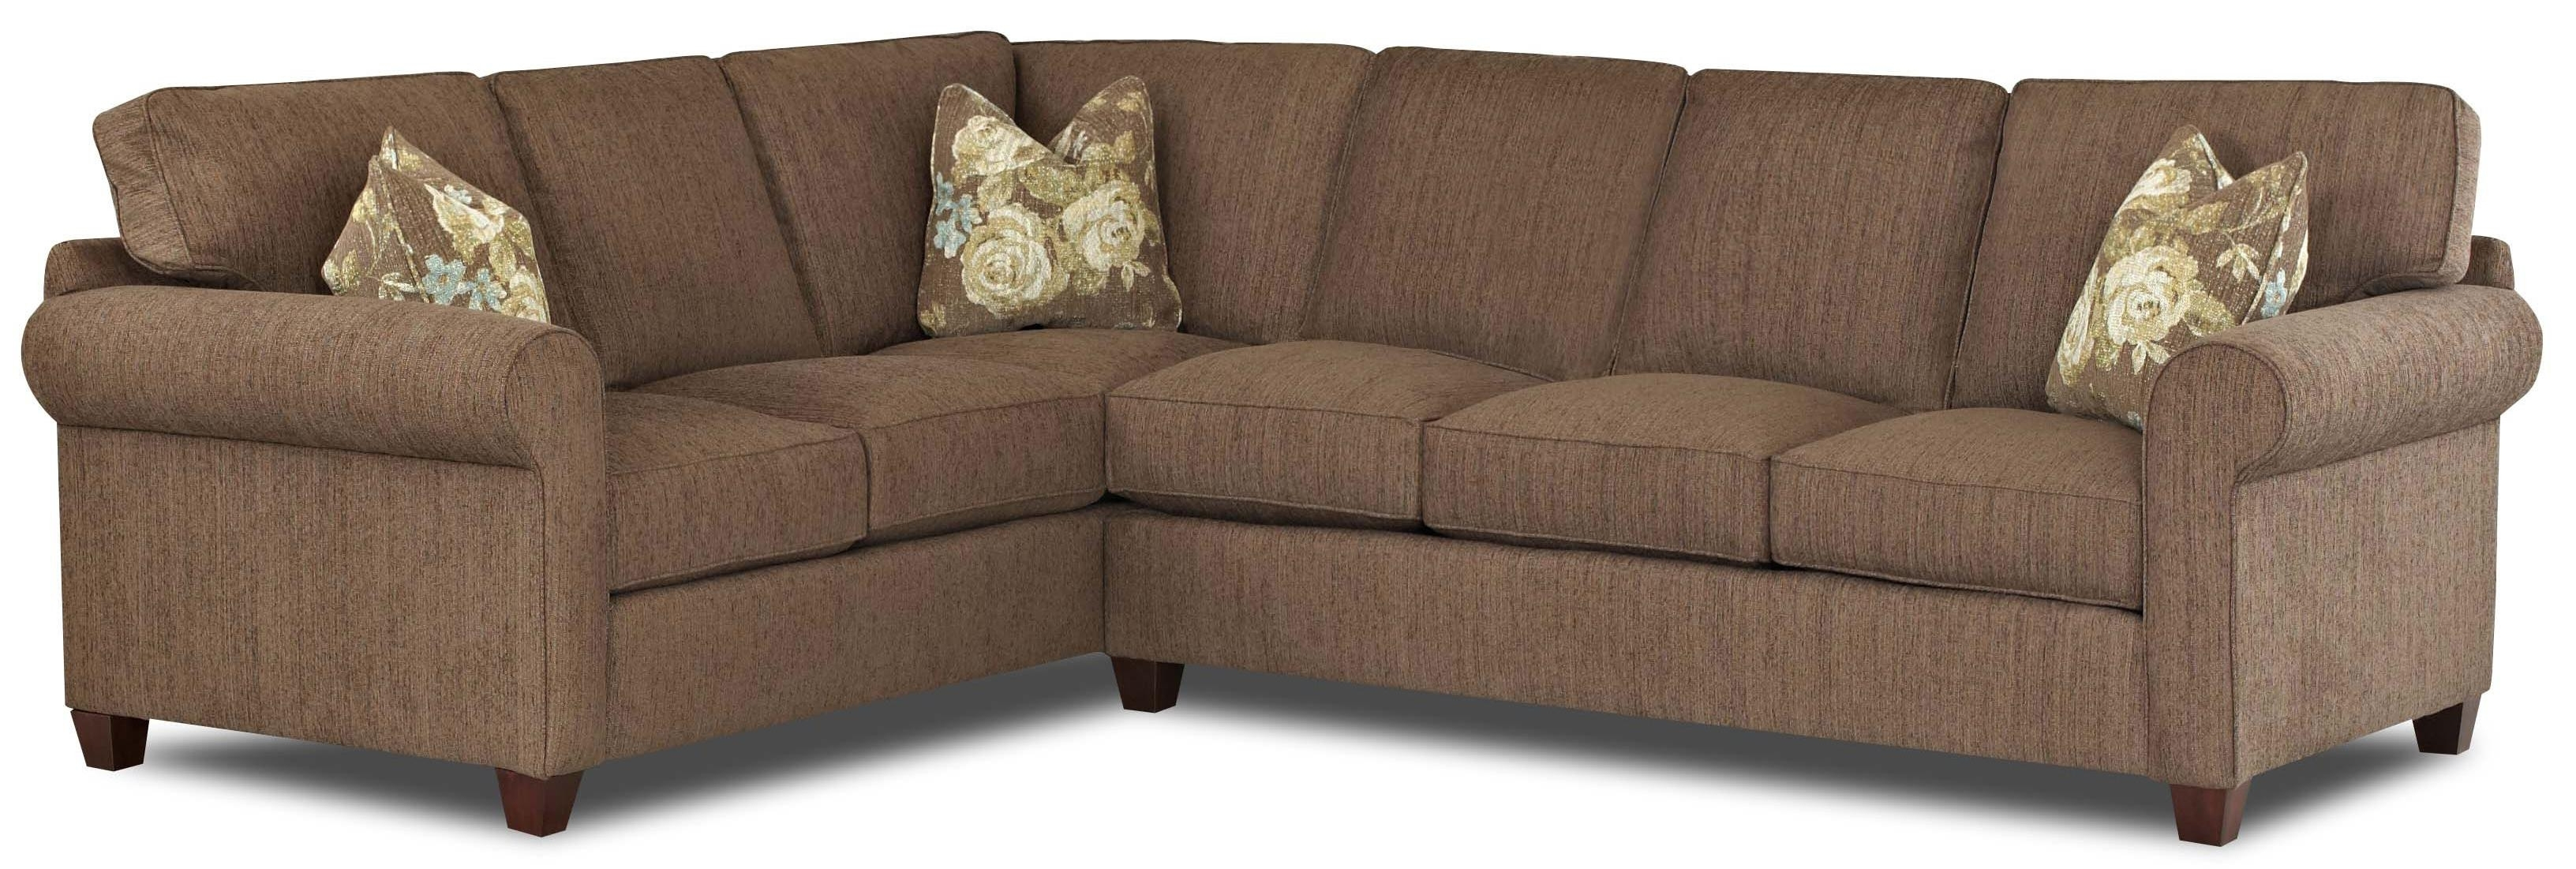 2 Piece Sectional Sofa Slipcovers – Home Decor 88 inside Avery 2 Piece Sectionals With Laf Armless Chaise